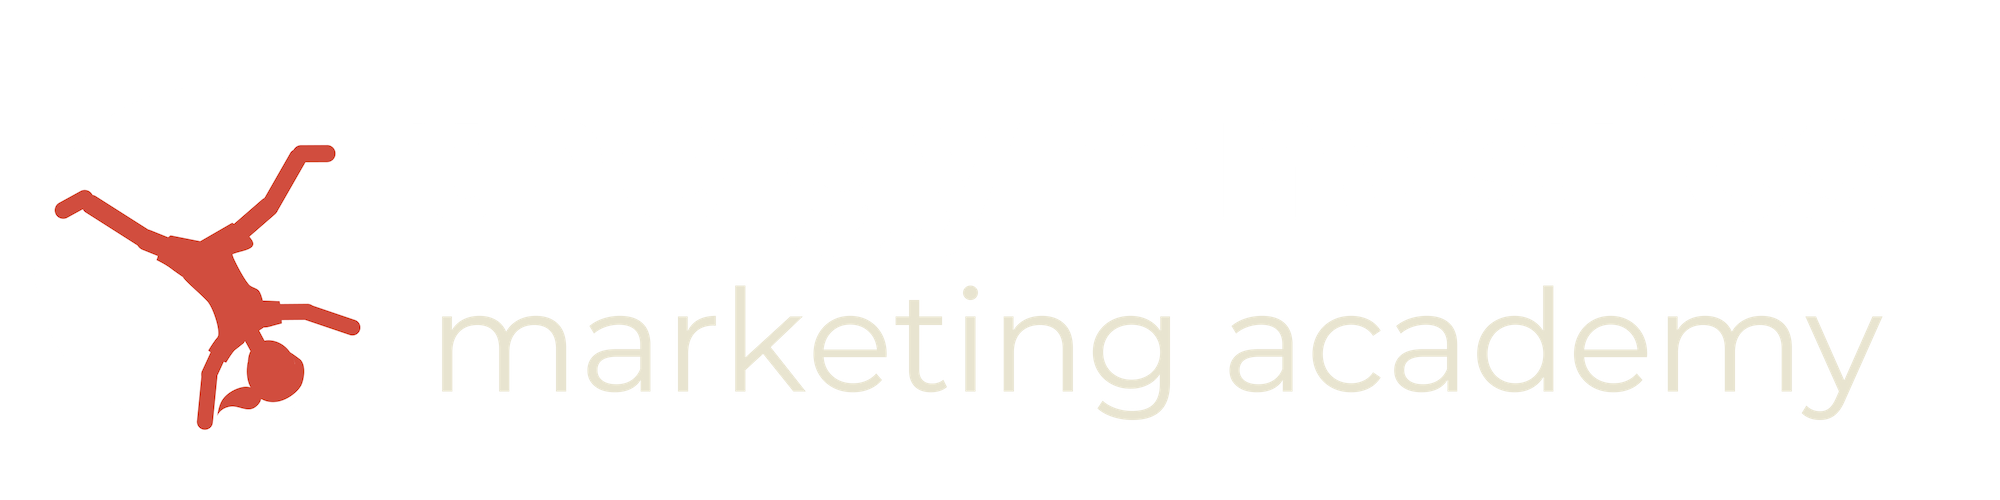 gymnastics marketing academy lightlogo 2000px